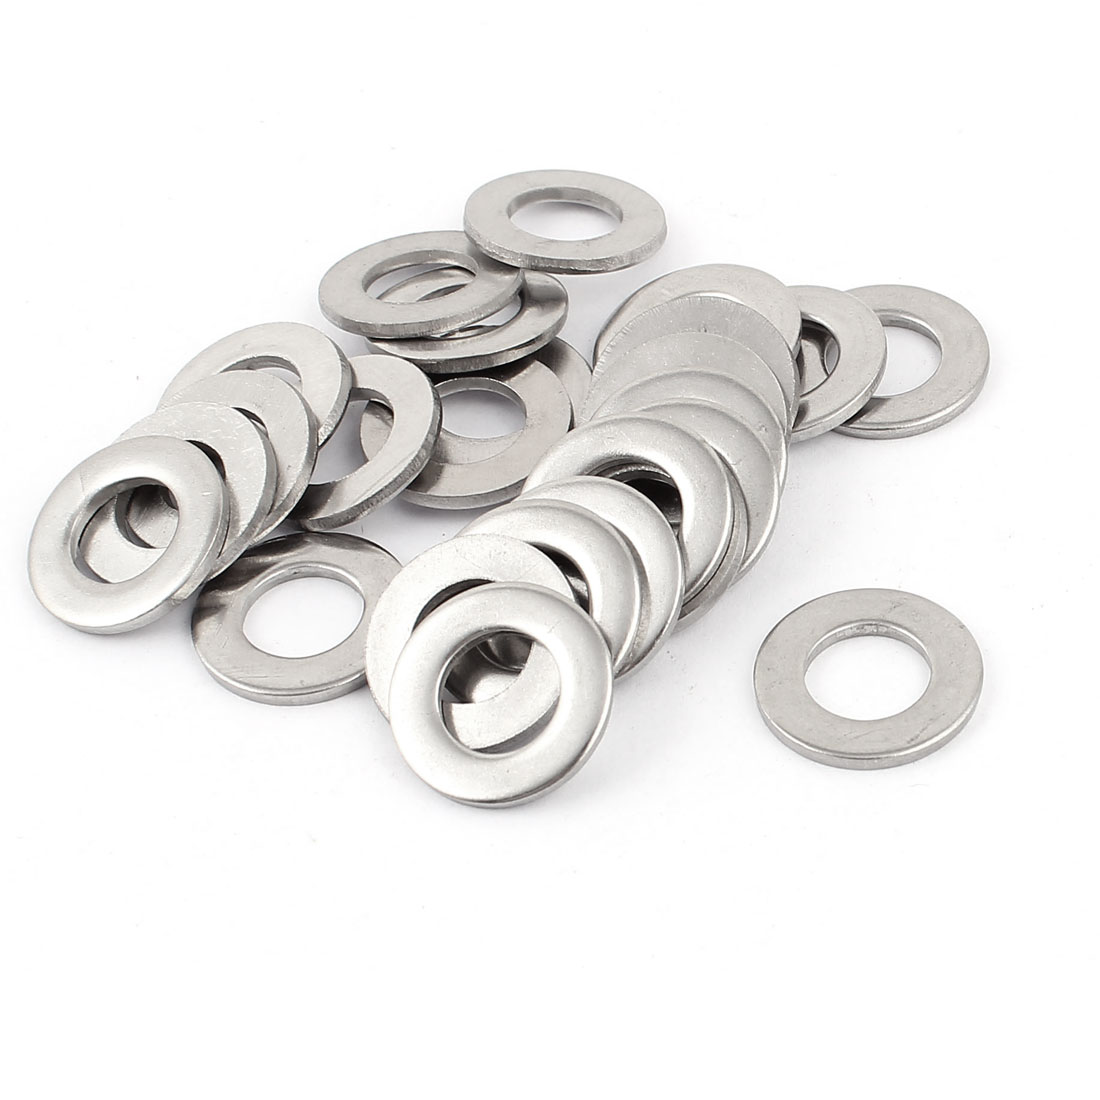 25pcs 304 Stainless Steel Split Lock Spring Washers 11mm Screw Spacer Pad